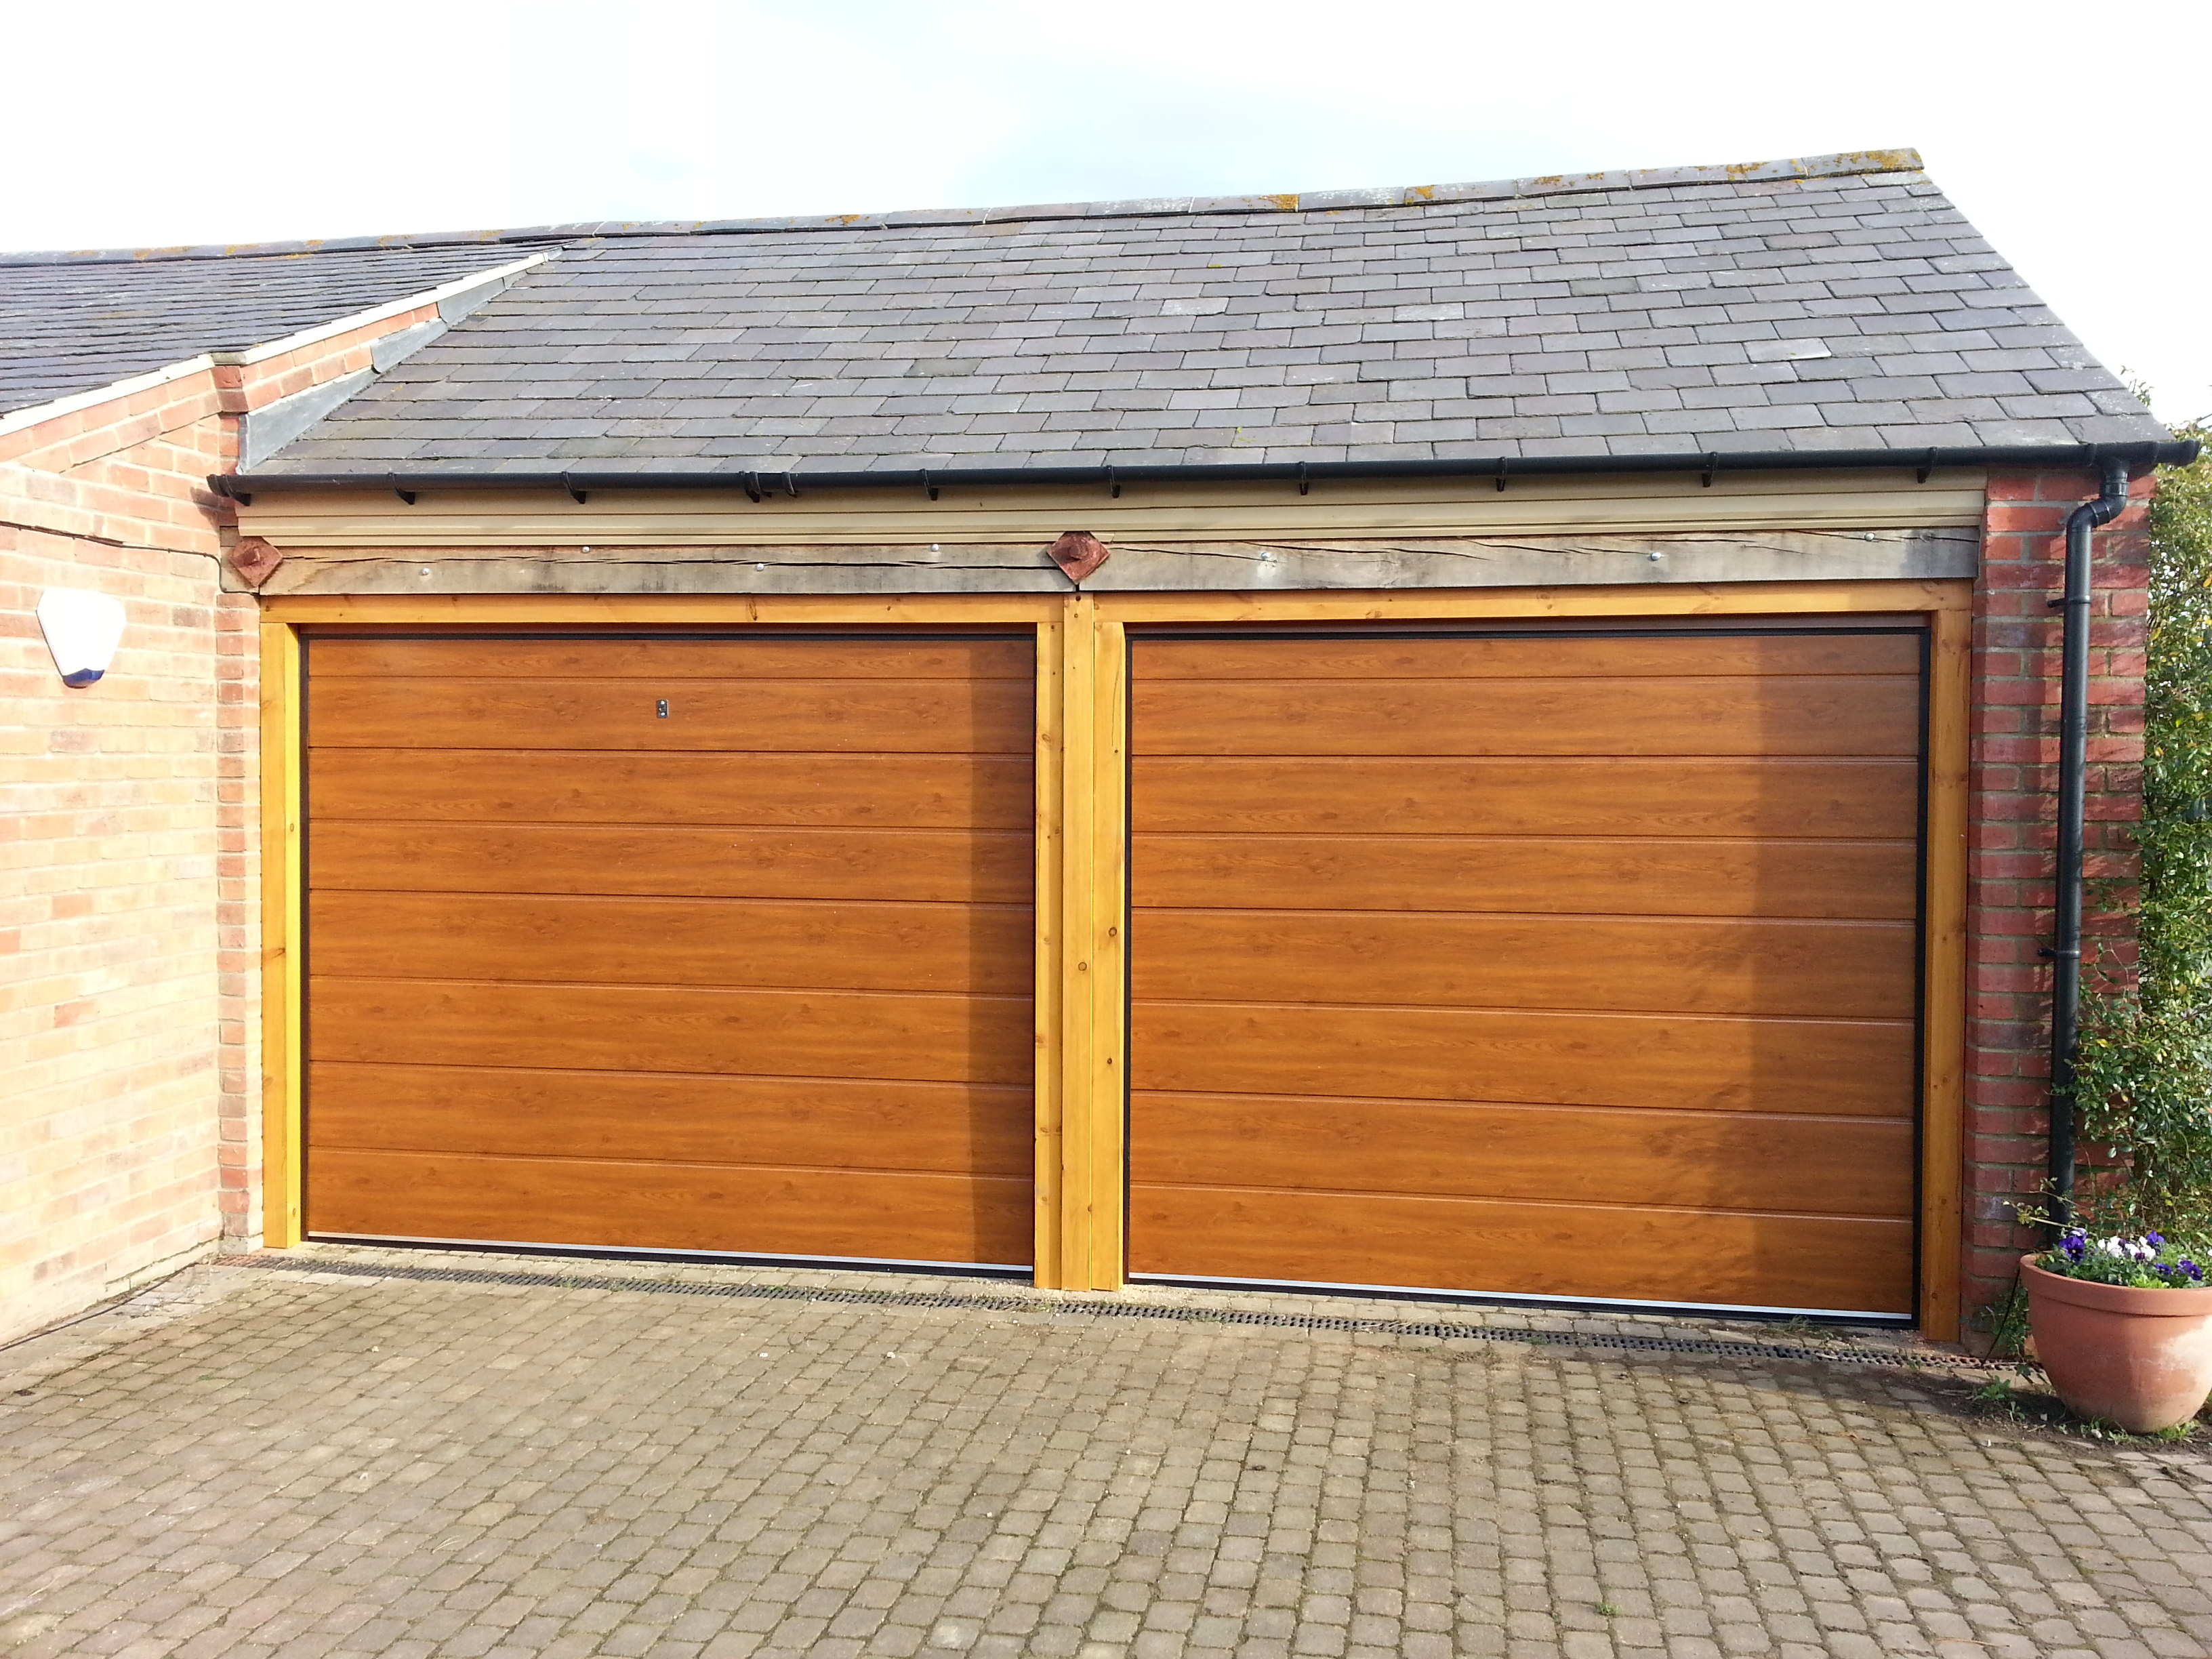 2448 #BF820C New Garage Doors Grantham – The Garage Door Company Grantham  save image Garage Doors New 36873264